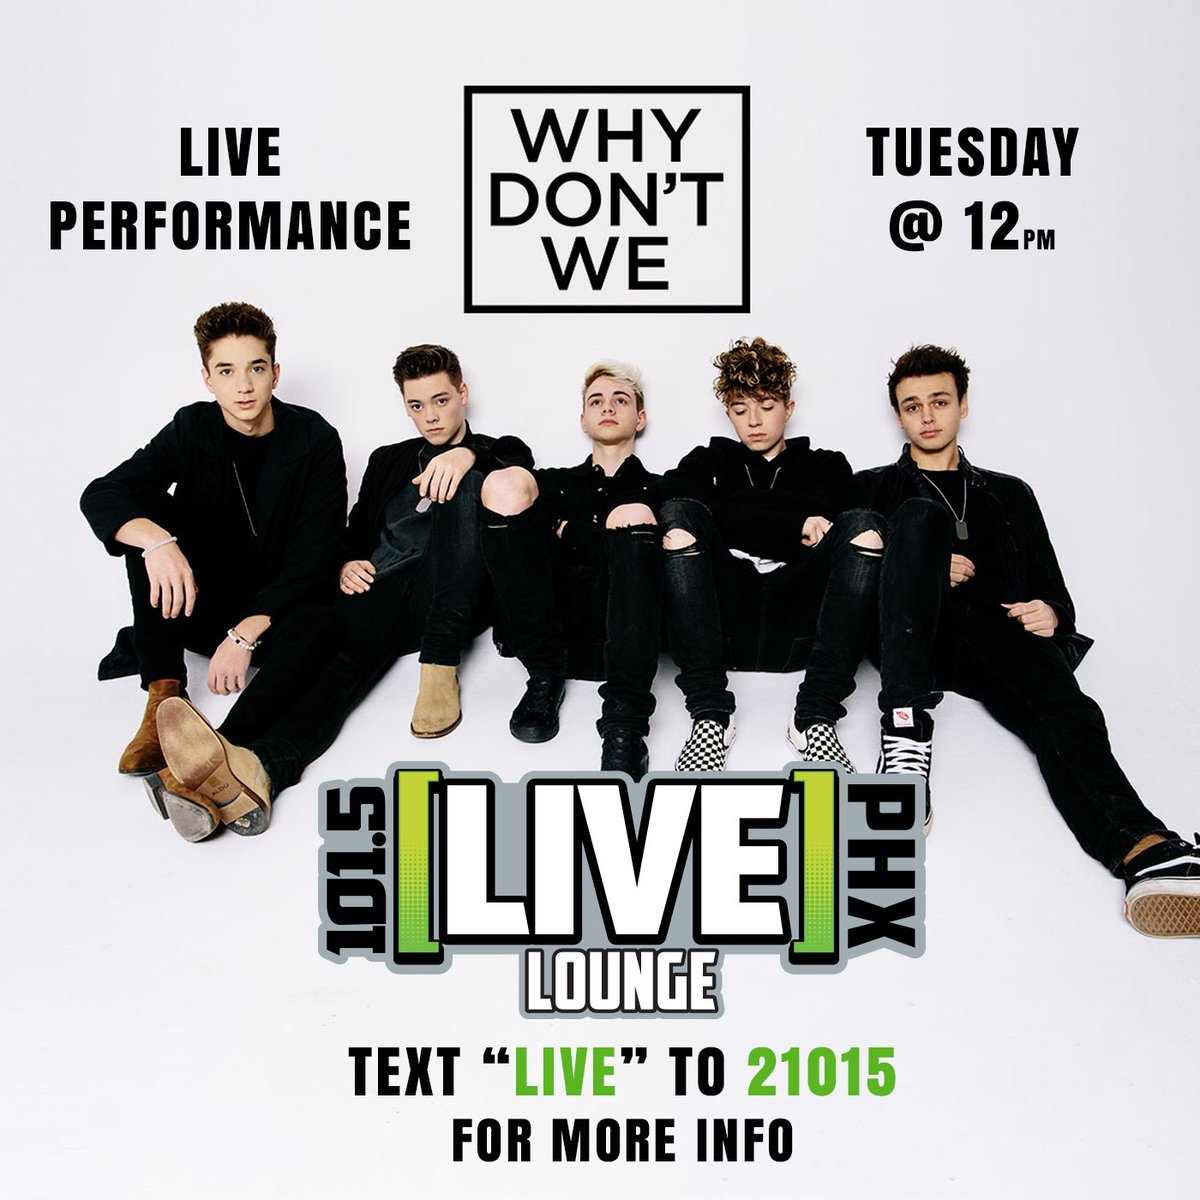 We got @whydontwemusic in studio tomorrow for a LIVE performance! Want to check it out? https://t.co/z37YzdKmr5